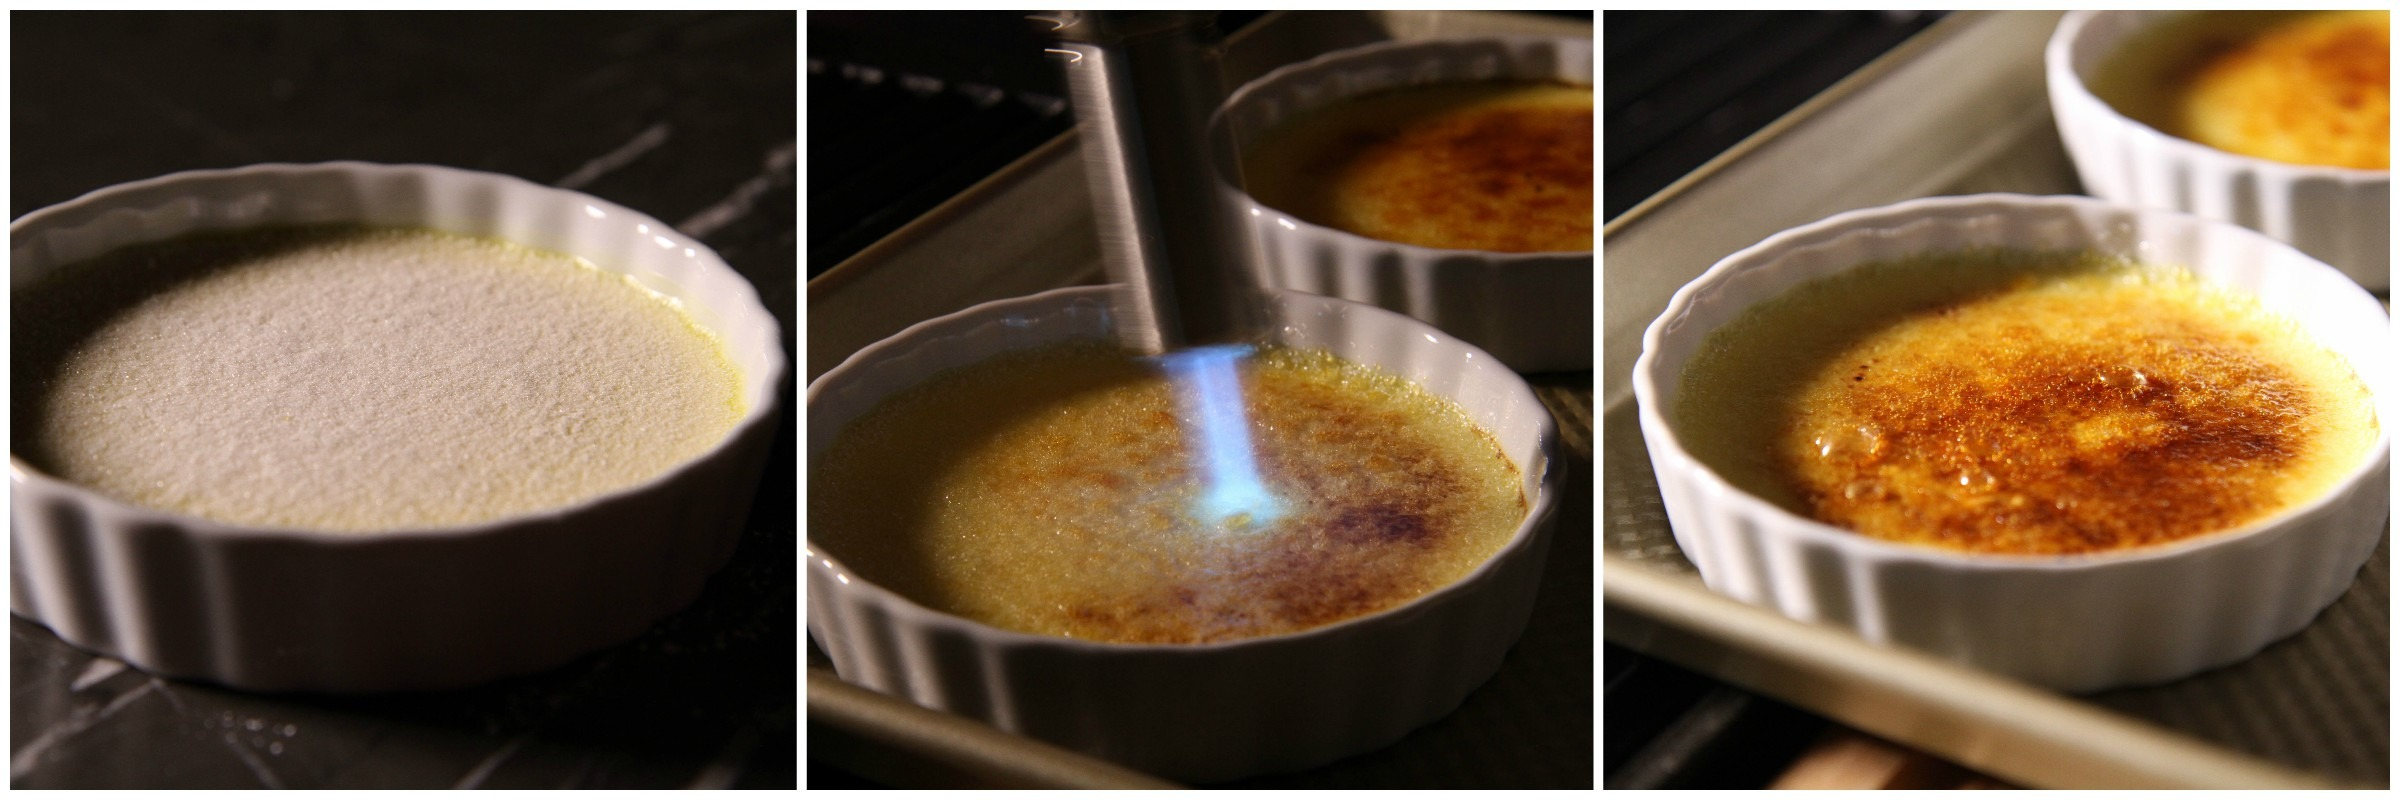 Burning Creme Brulee Collage